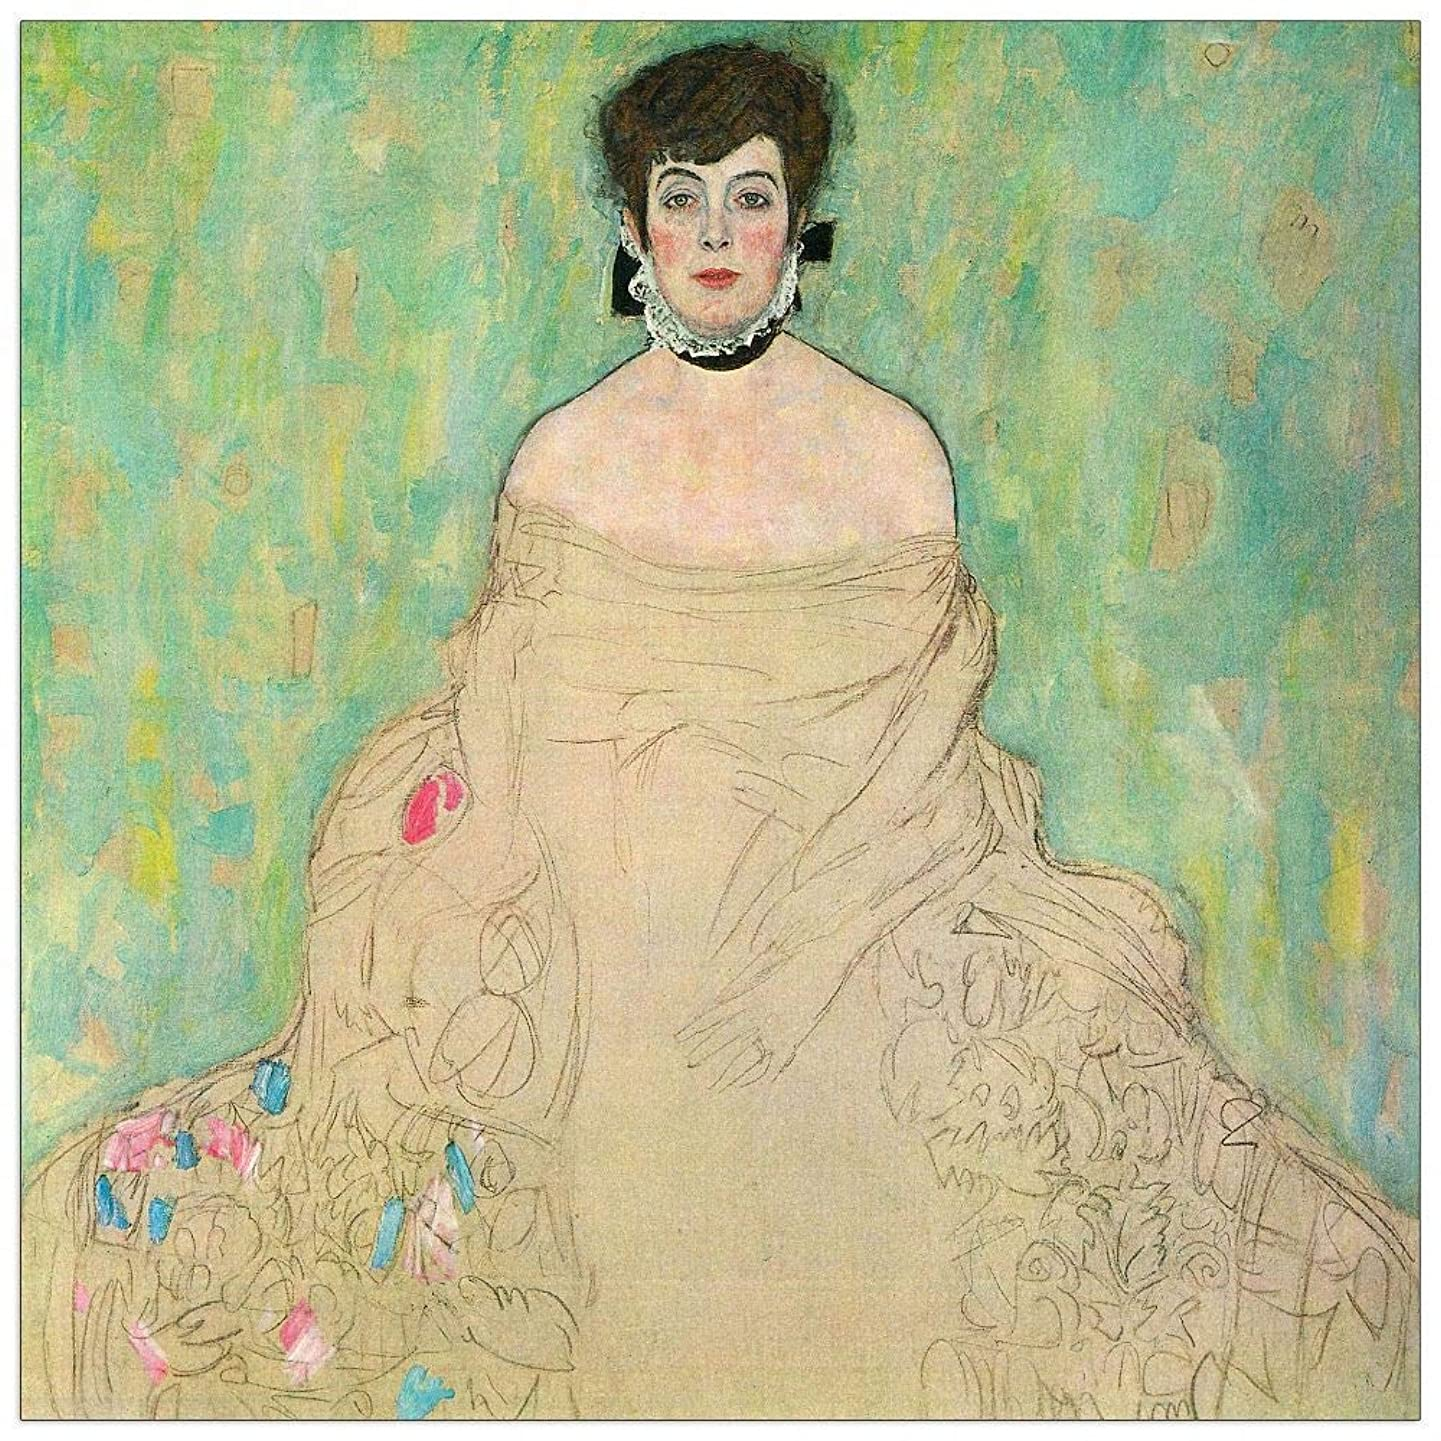 ArtPlaza TW90412 Klimt Gustav - Portrait of Amalie Zuckerkandl Decorative Panel 15.5x15.5 Inch Multicolored